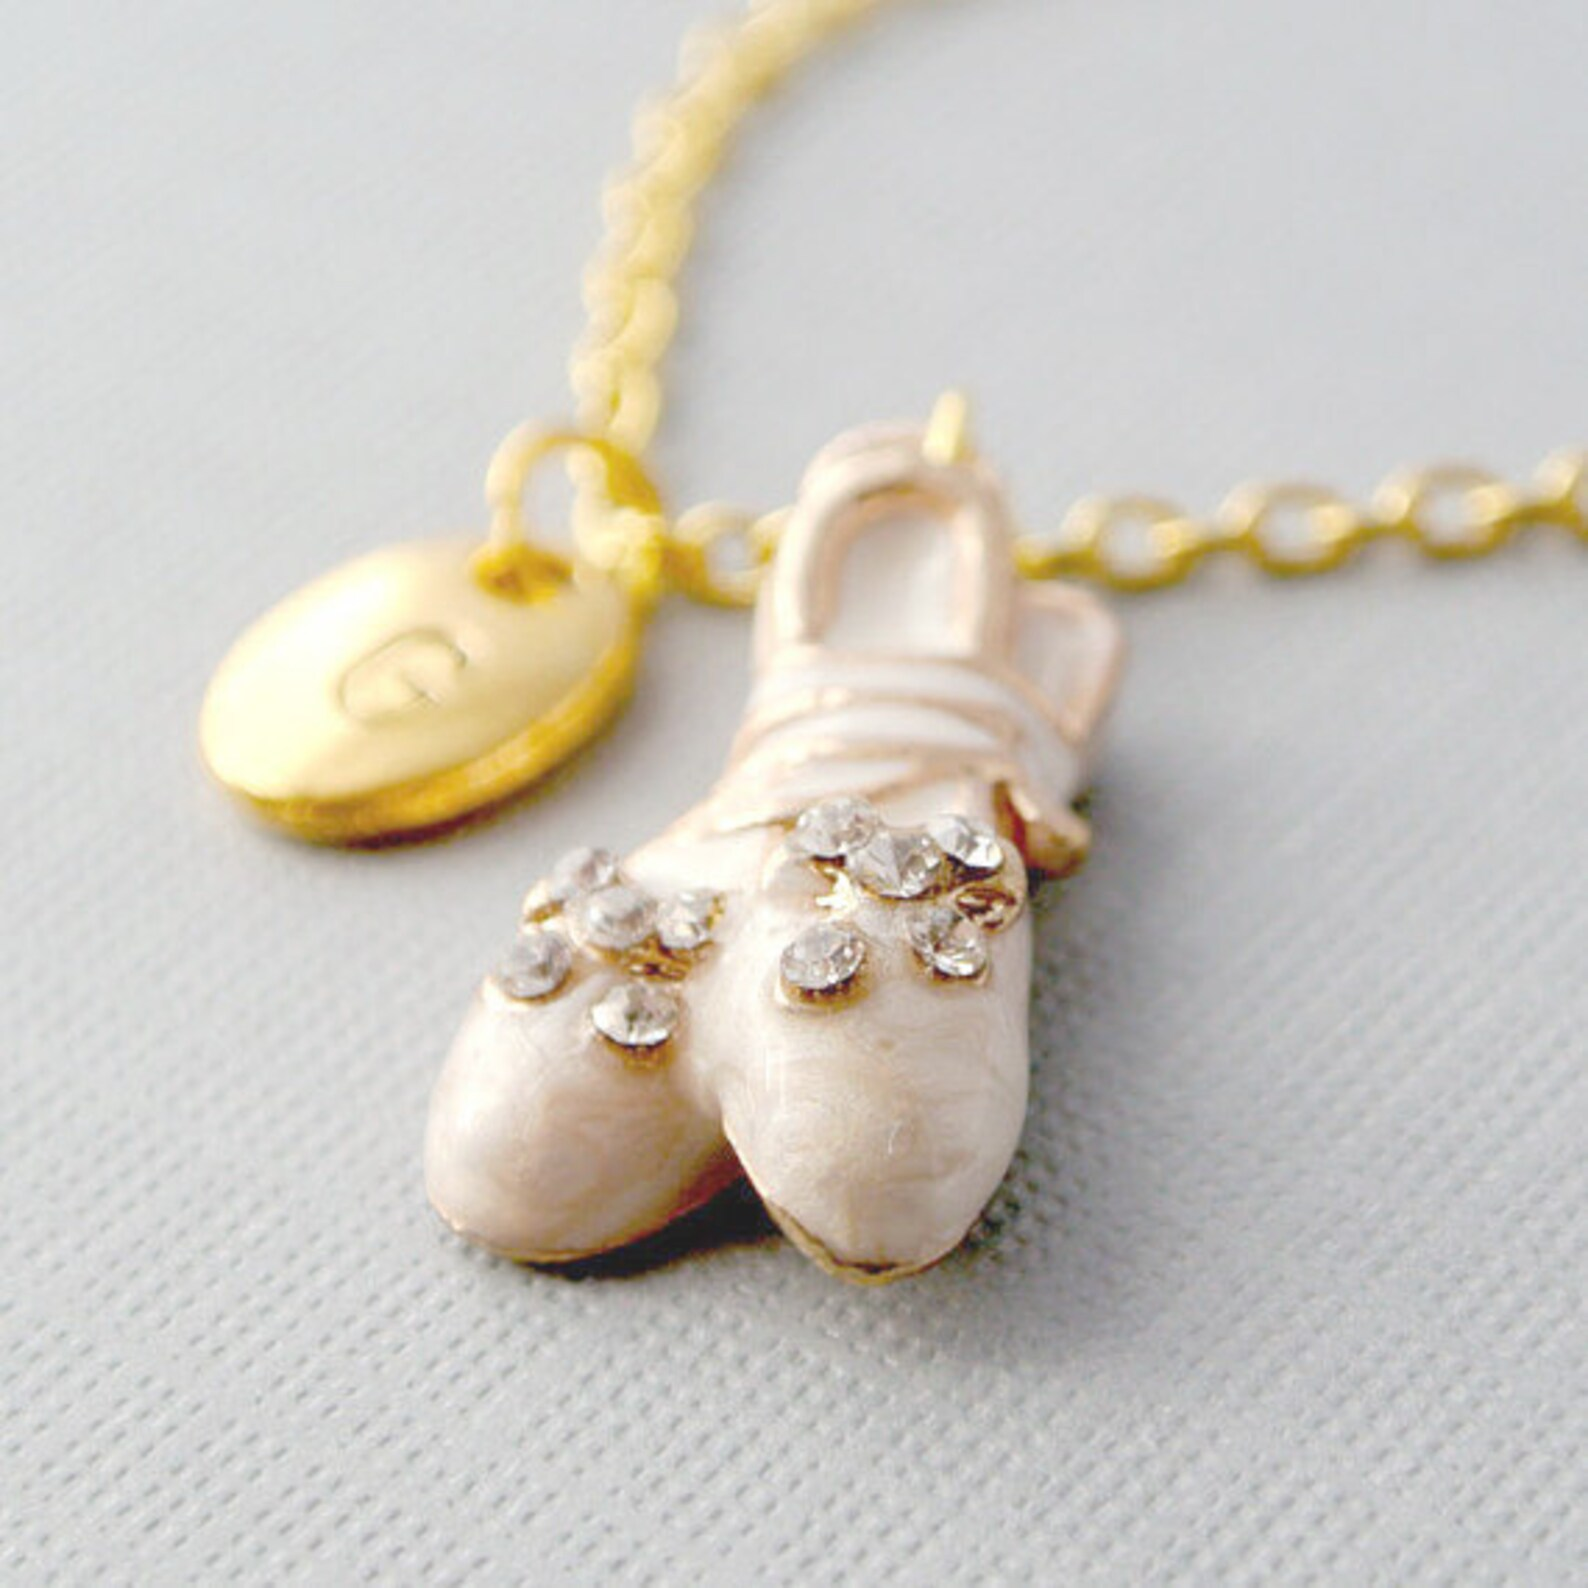 ballet shoes necklace-personalized hand-stamped initial gold tone & white charm-gift for her